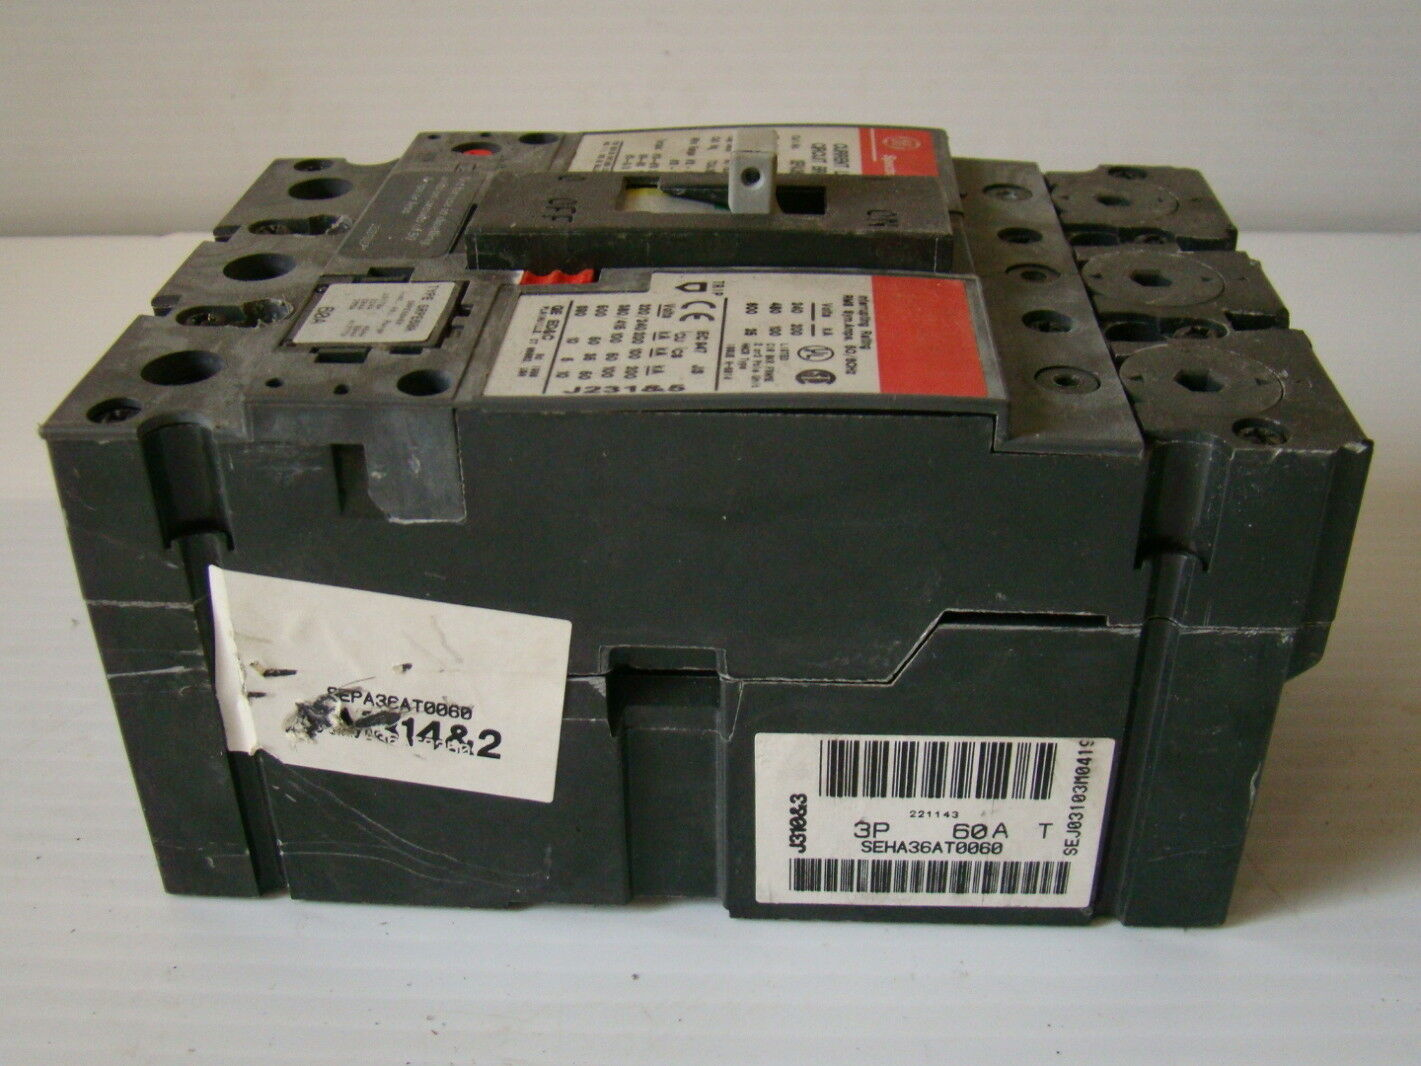 hight resolution of  ge spectra rms 60a current limiting circuit breaker sepa36at0060